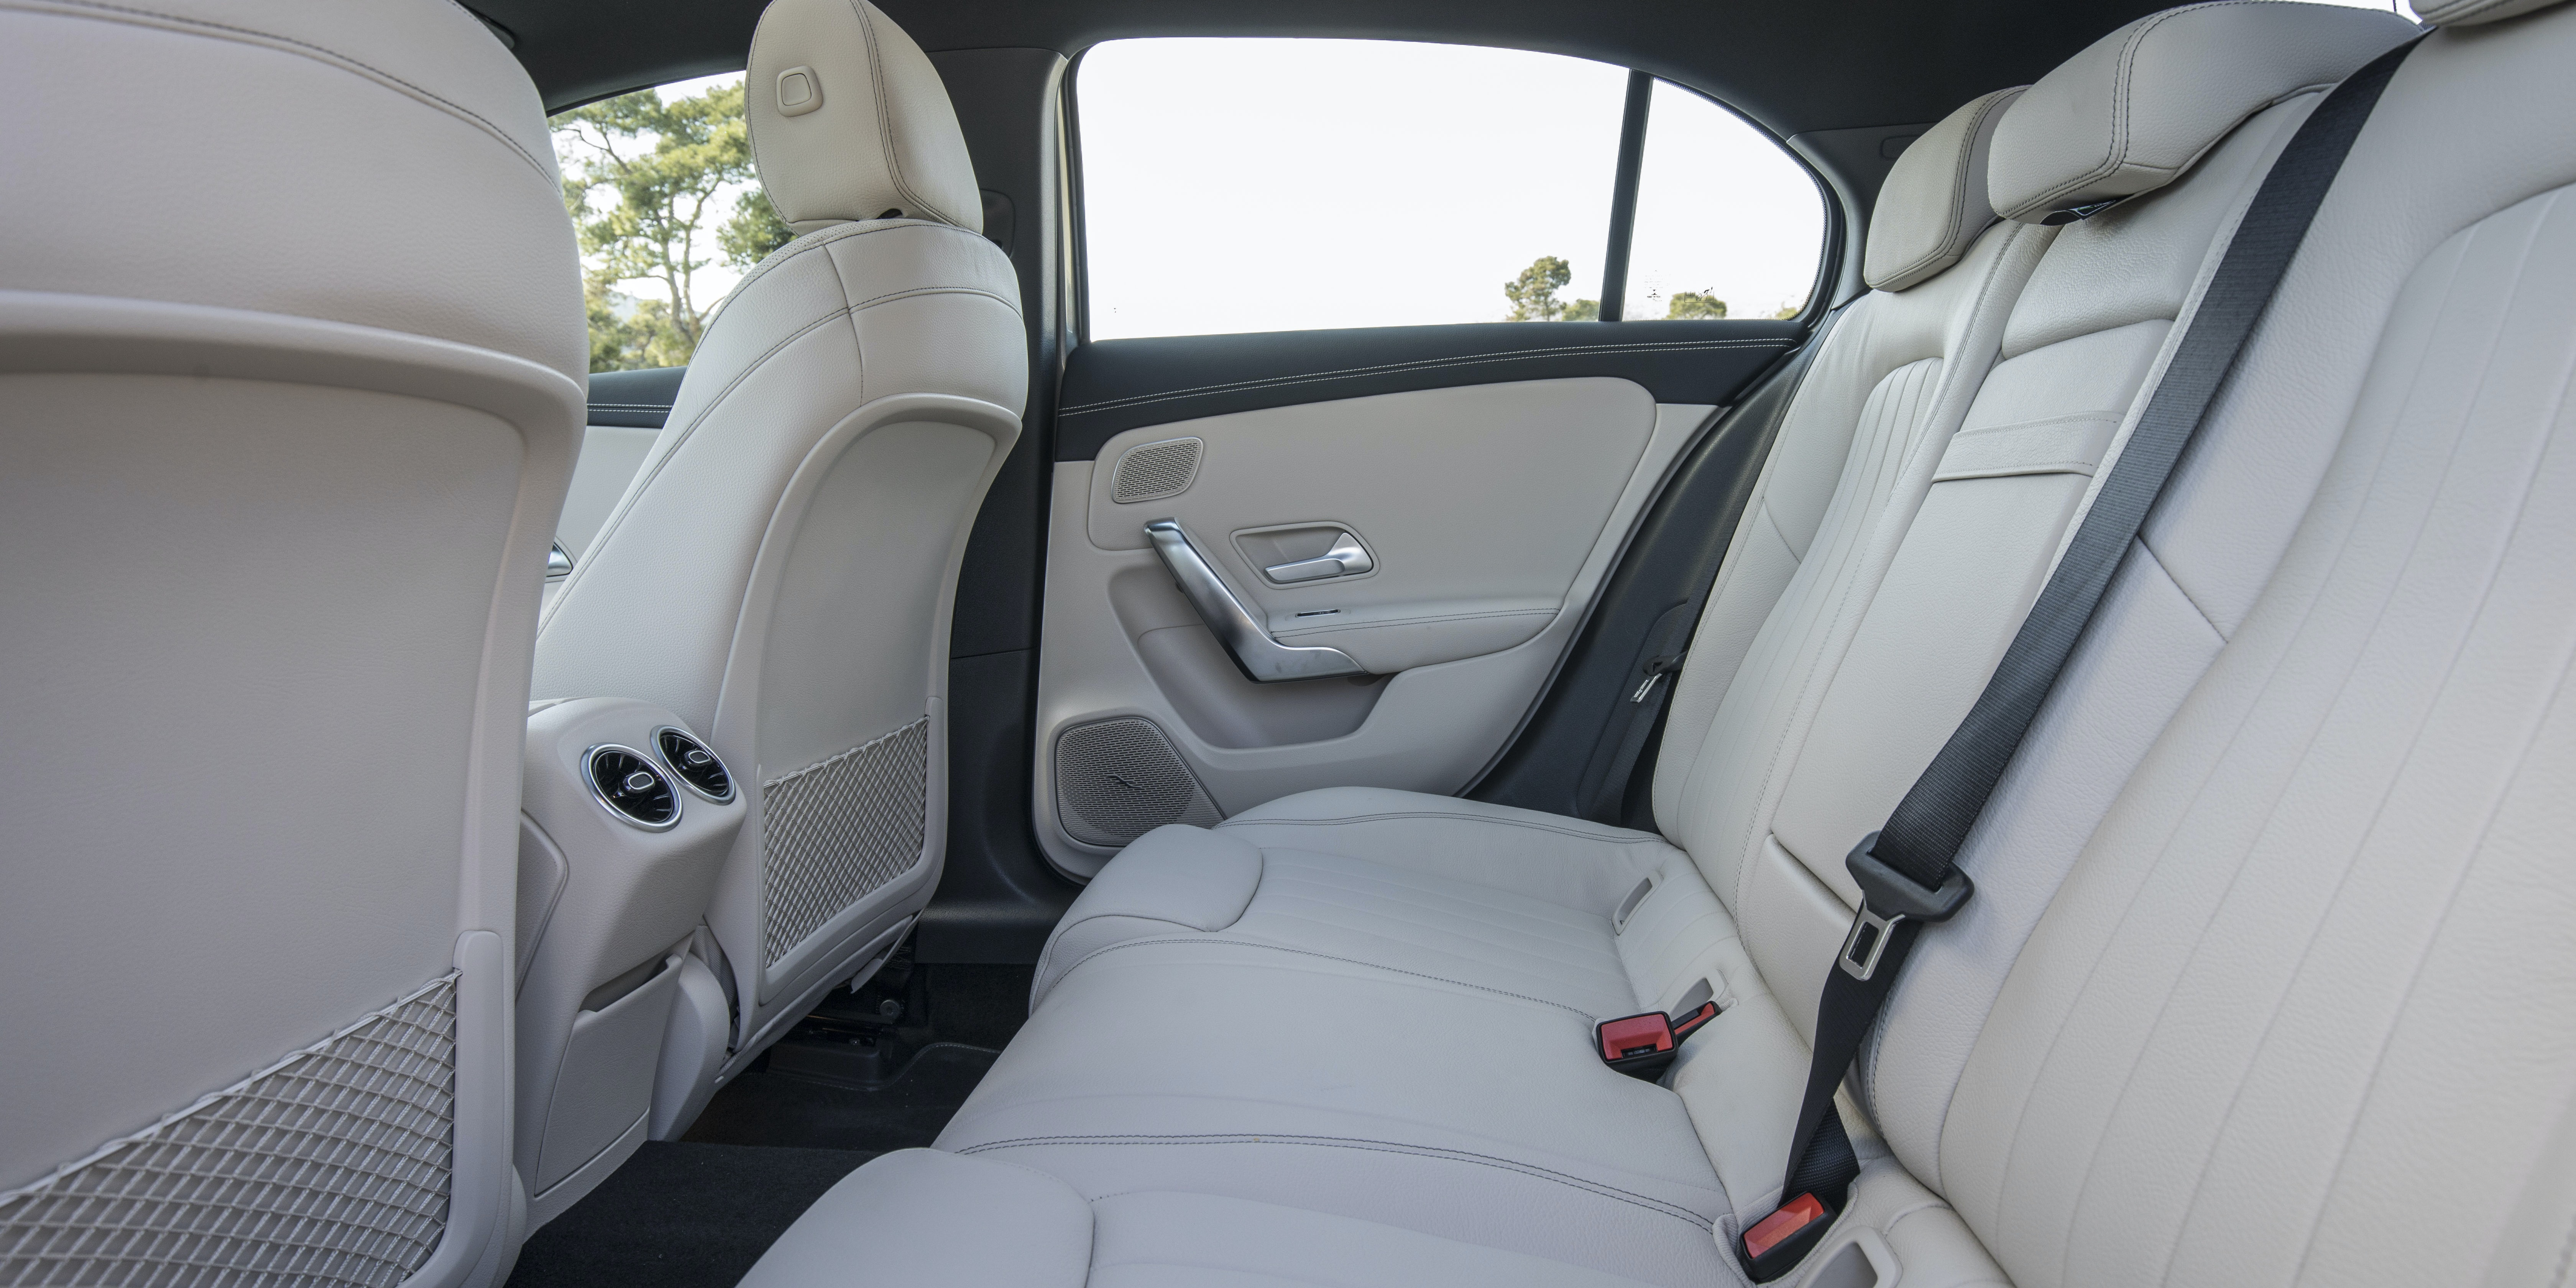 The back seats are fairly spacious, but alternatives are roomier